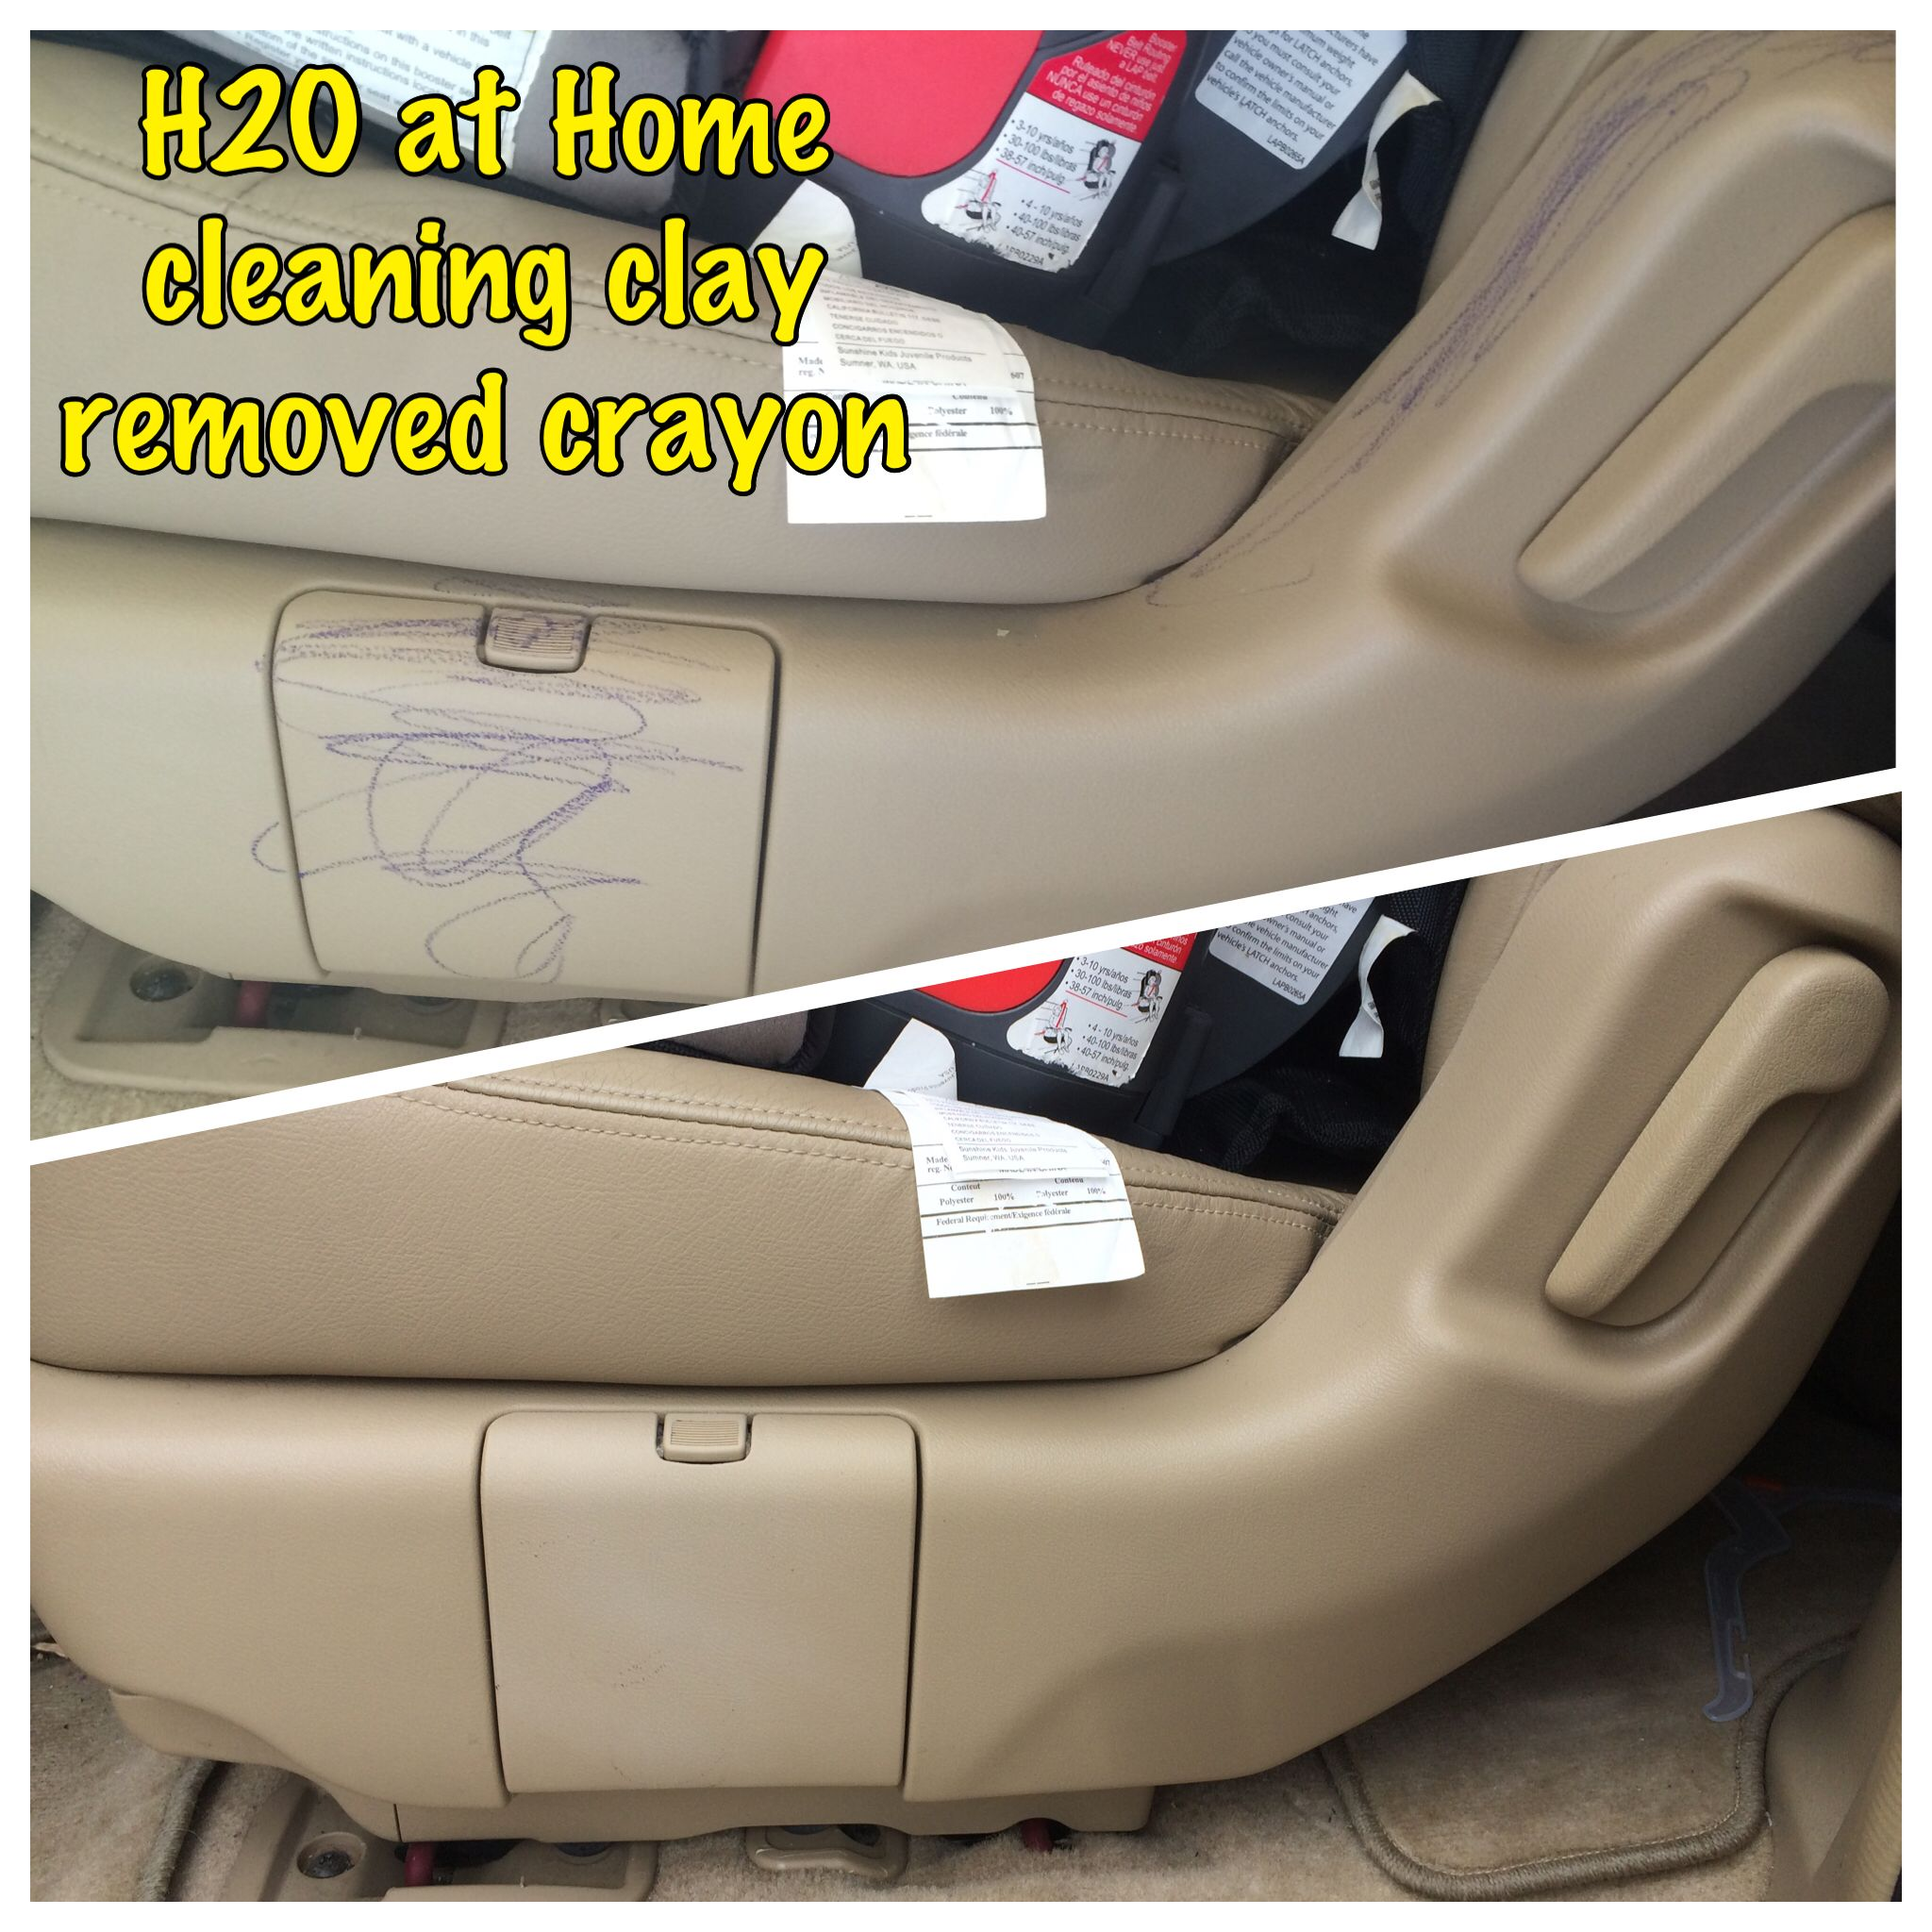 H2O at Home cleaning clay great inside your car too! www